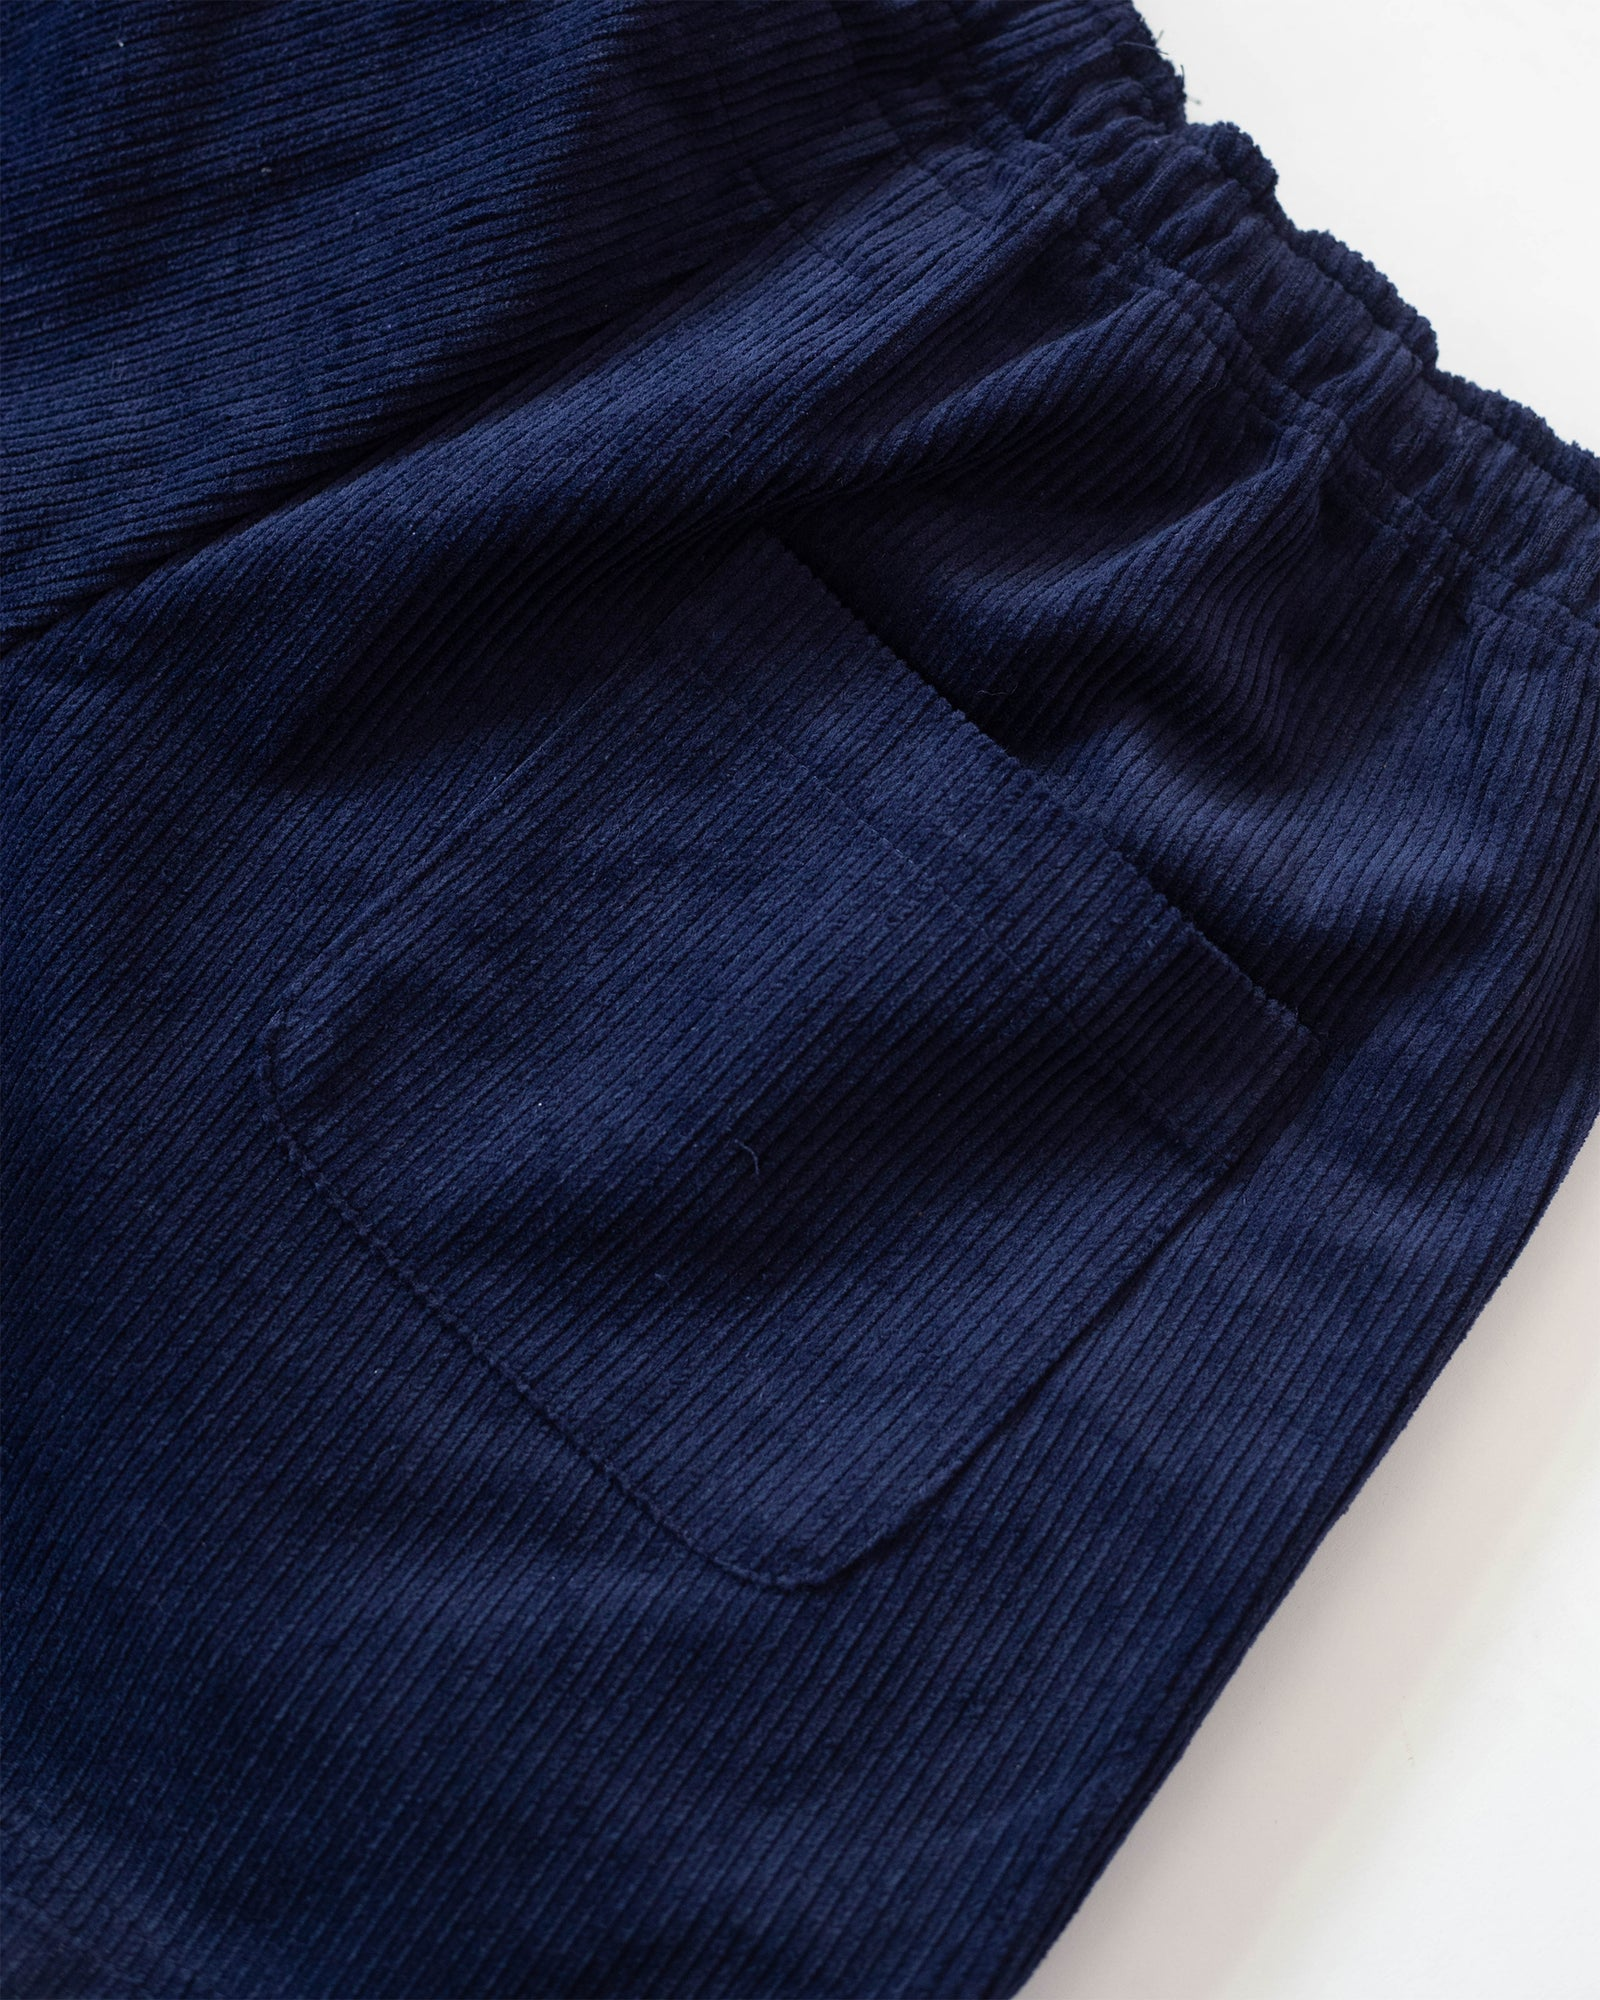 Load image into Gallery viewer, Corduroy Rugby Shorts Navy | CHECKS DOWNTOWN